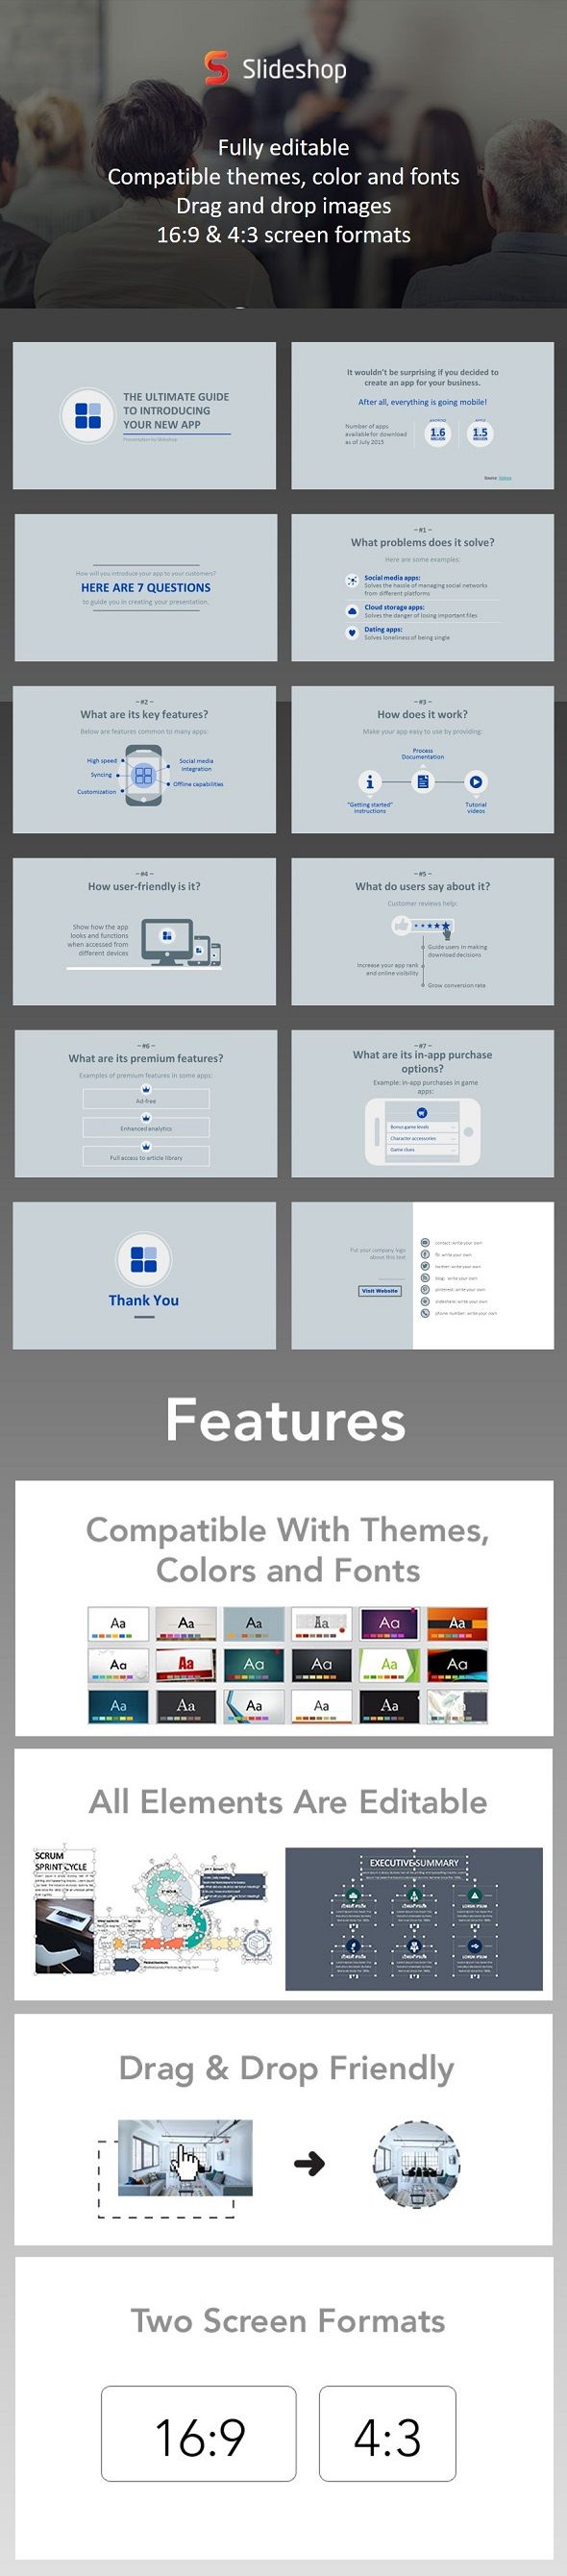 Mobile apps introduction presentation templates template and font mobile apps introduction powerpoint templates presentation templates download here httpsgraphicriveritemmobile apps introduction20164087ref toneelgroepblik Gallery